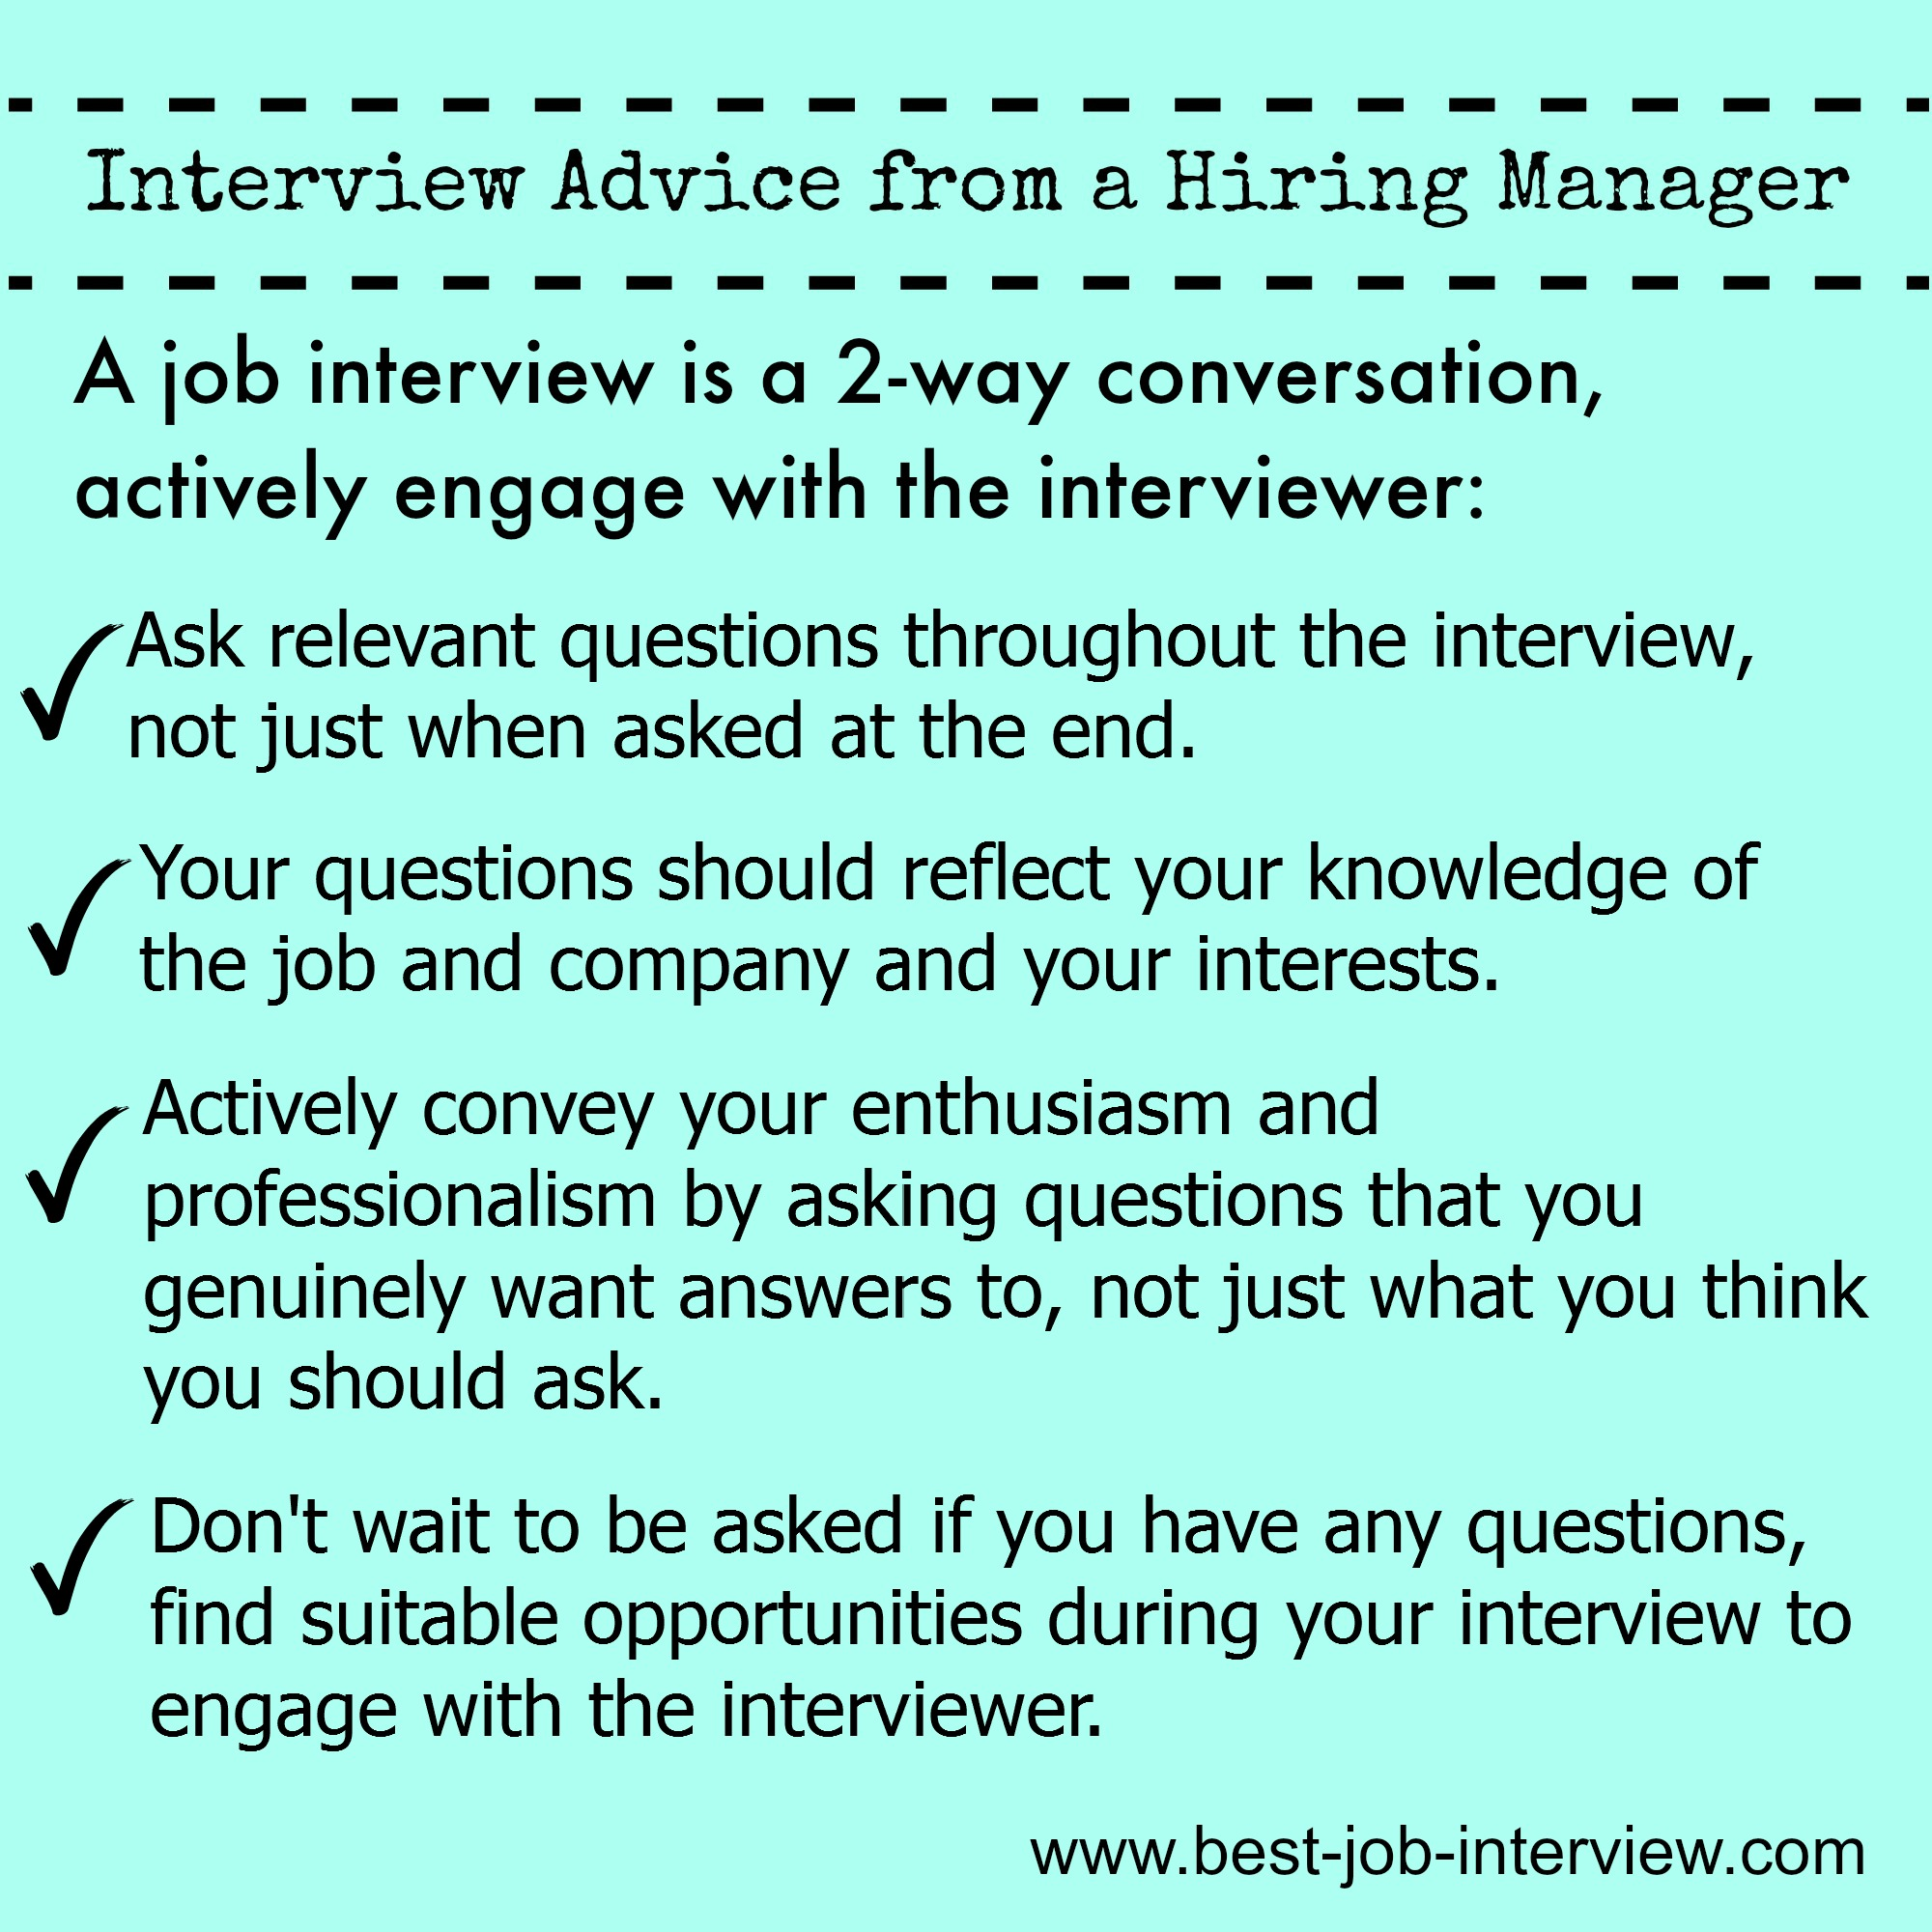 Enagage in Your Interview